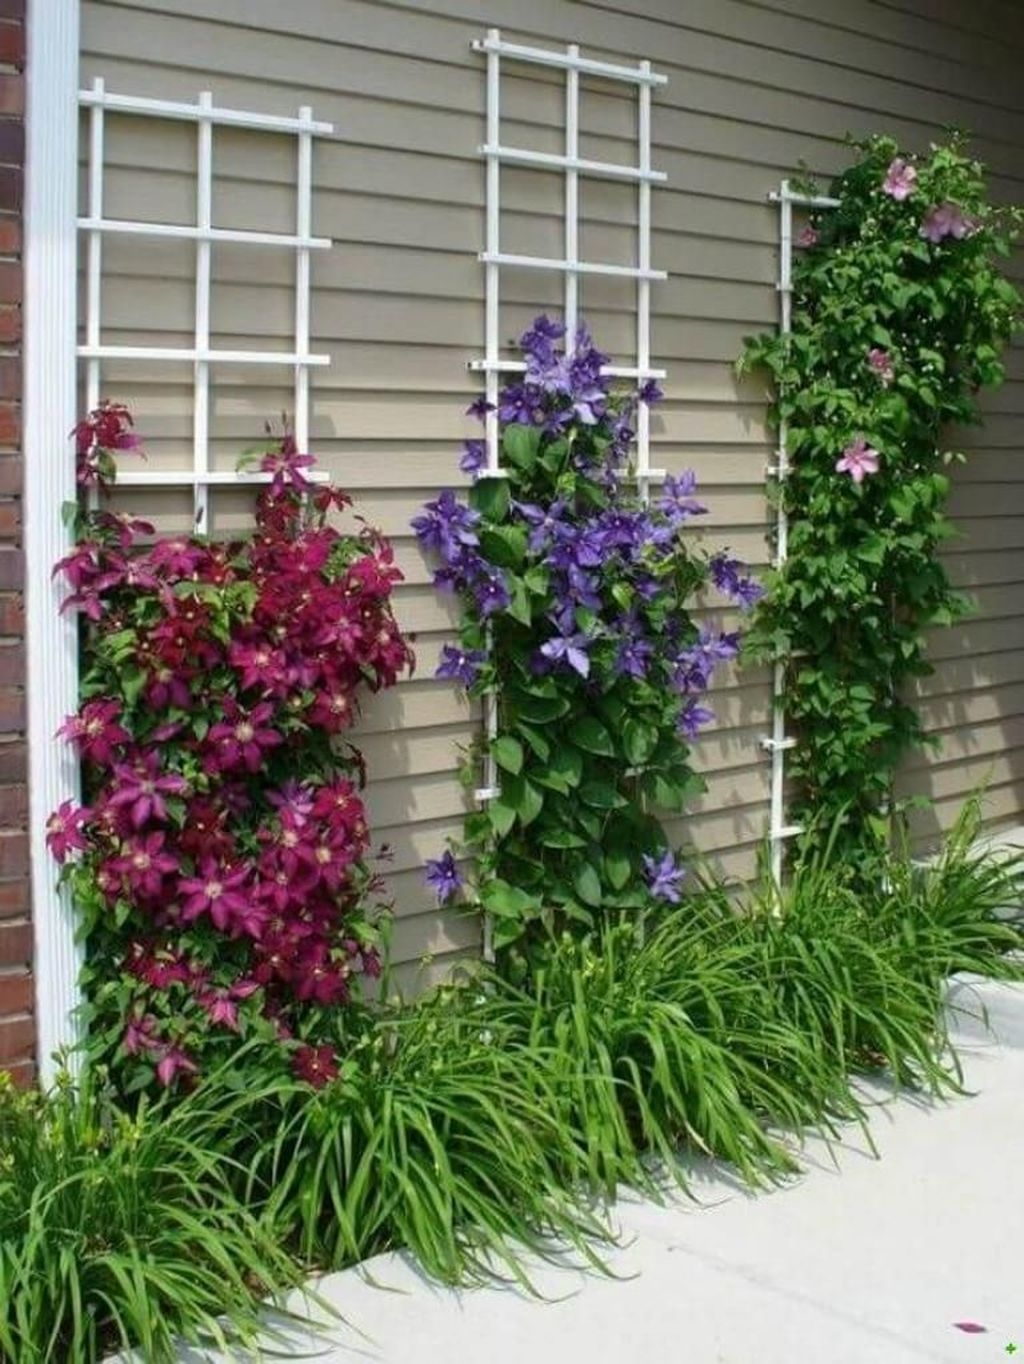 Fascinating One Day Backyard Project Ideas For Outdoor Space43